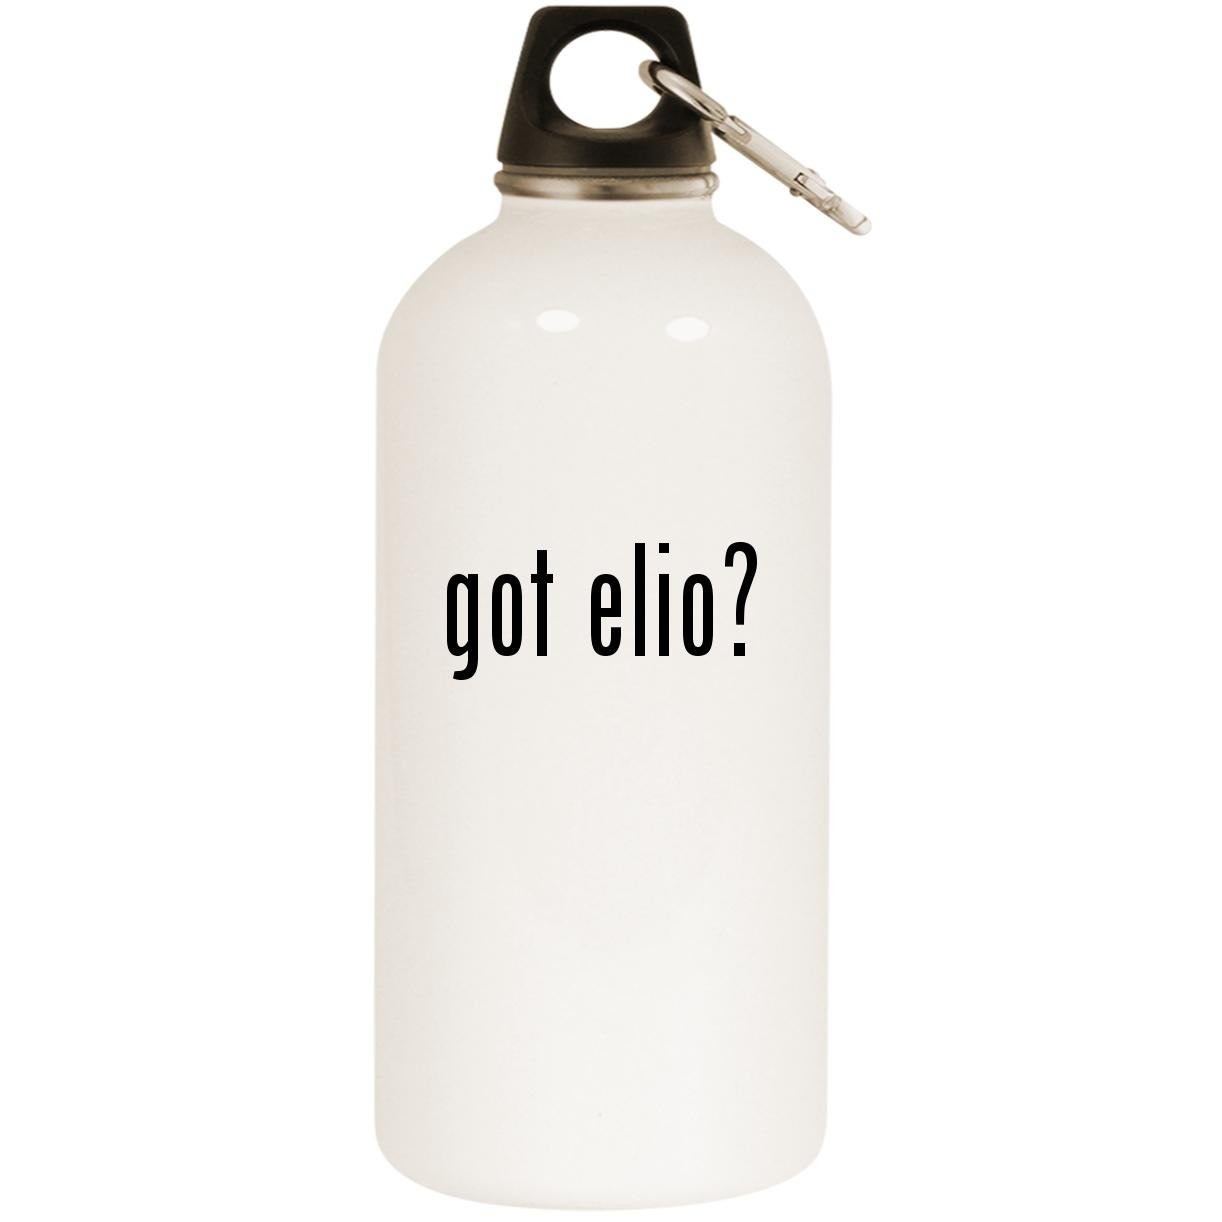 got elio? - White 20oz Stainless Steel Water Bottle with Carabiner